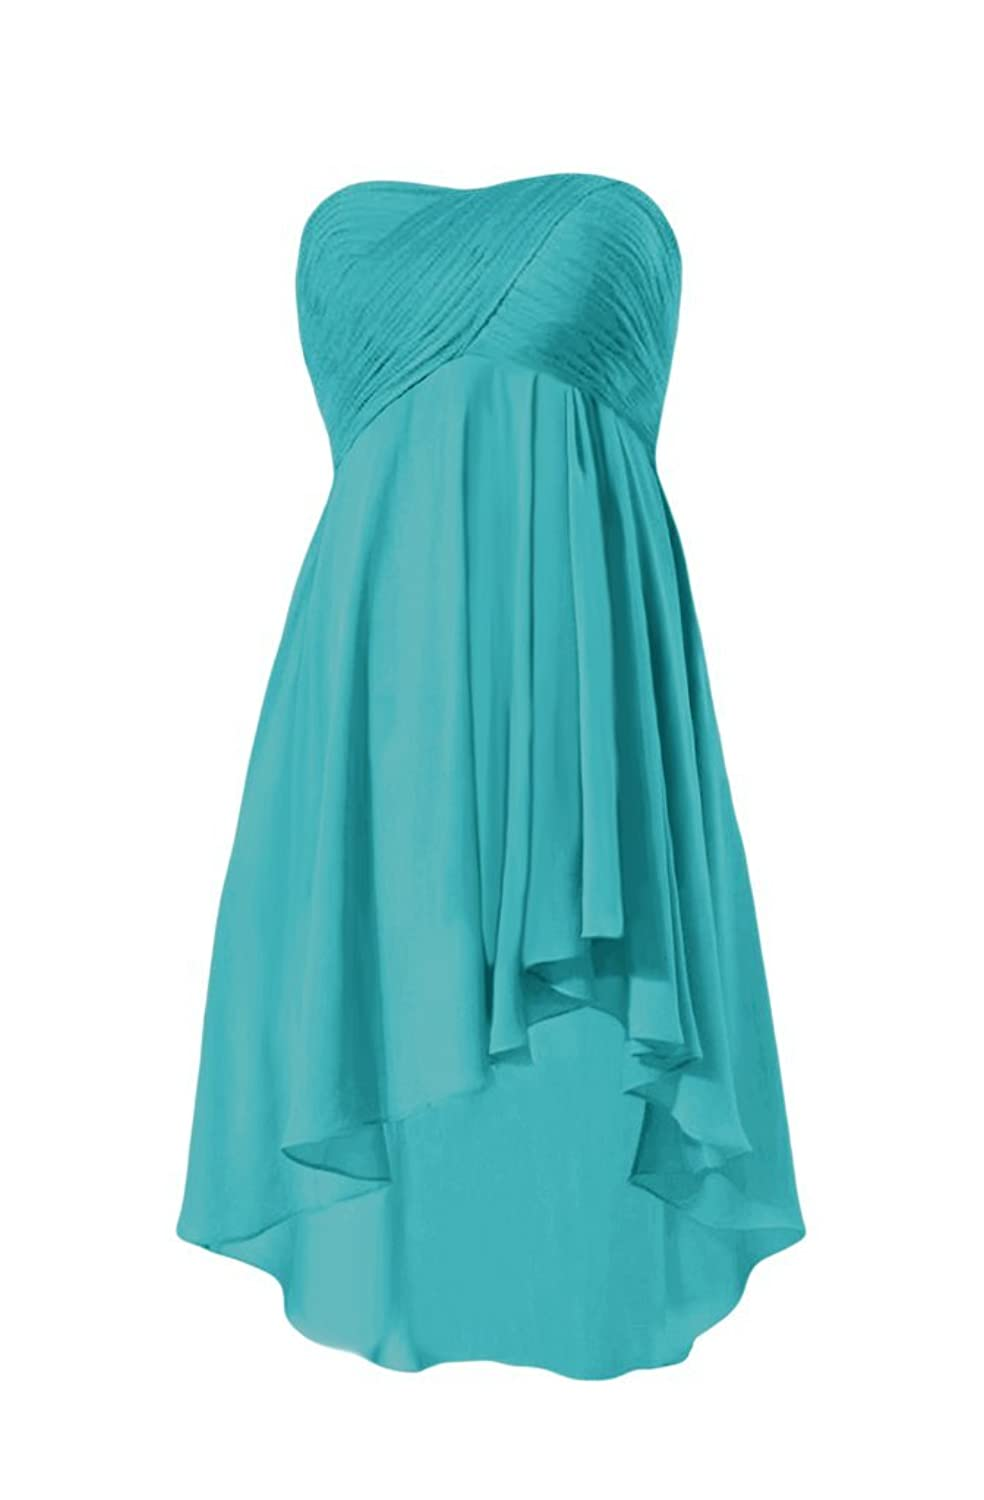 DaisyFormals Strapless Chiffon Party Dress Party Dress Prom Dress (BM2428)